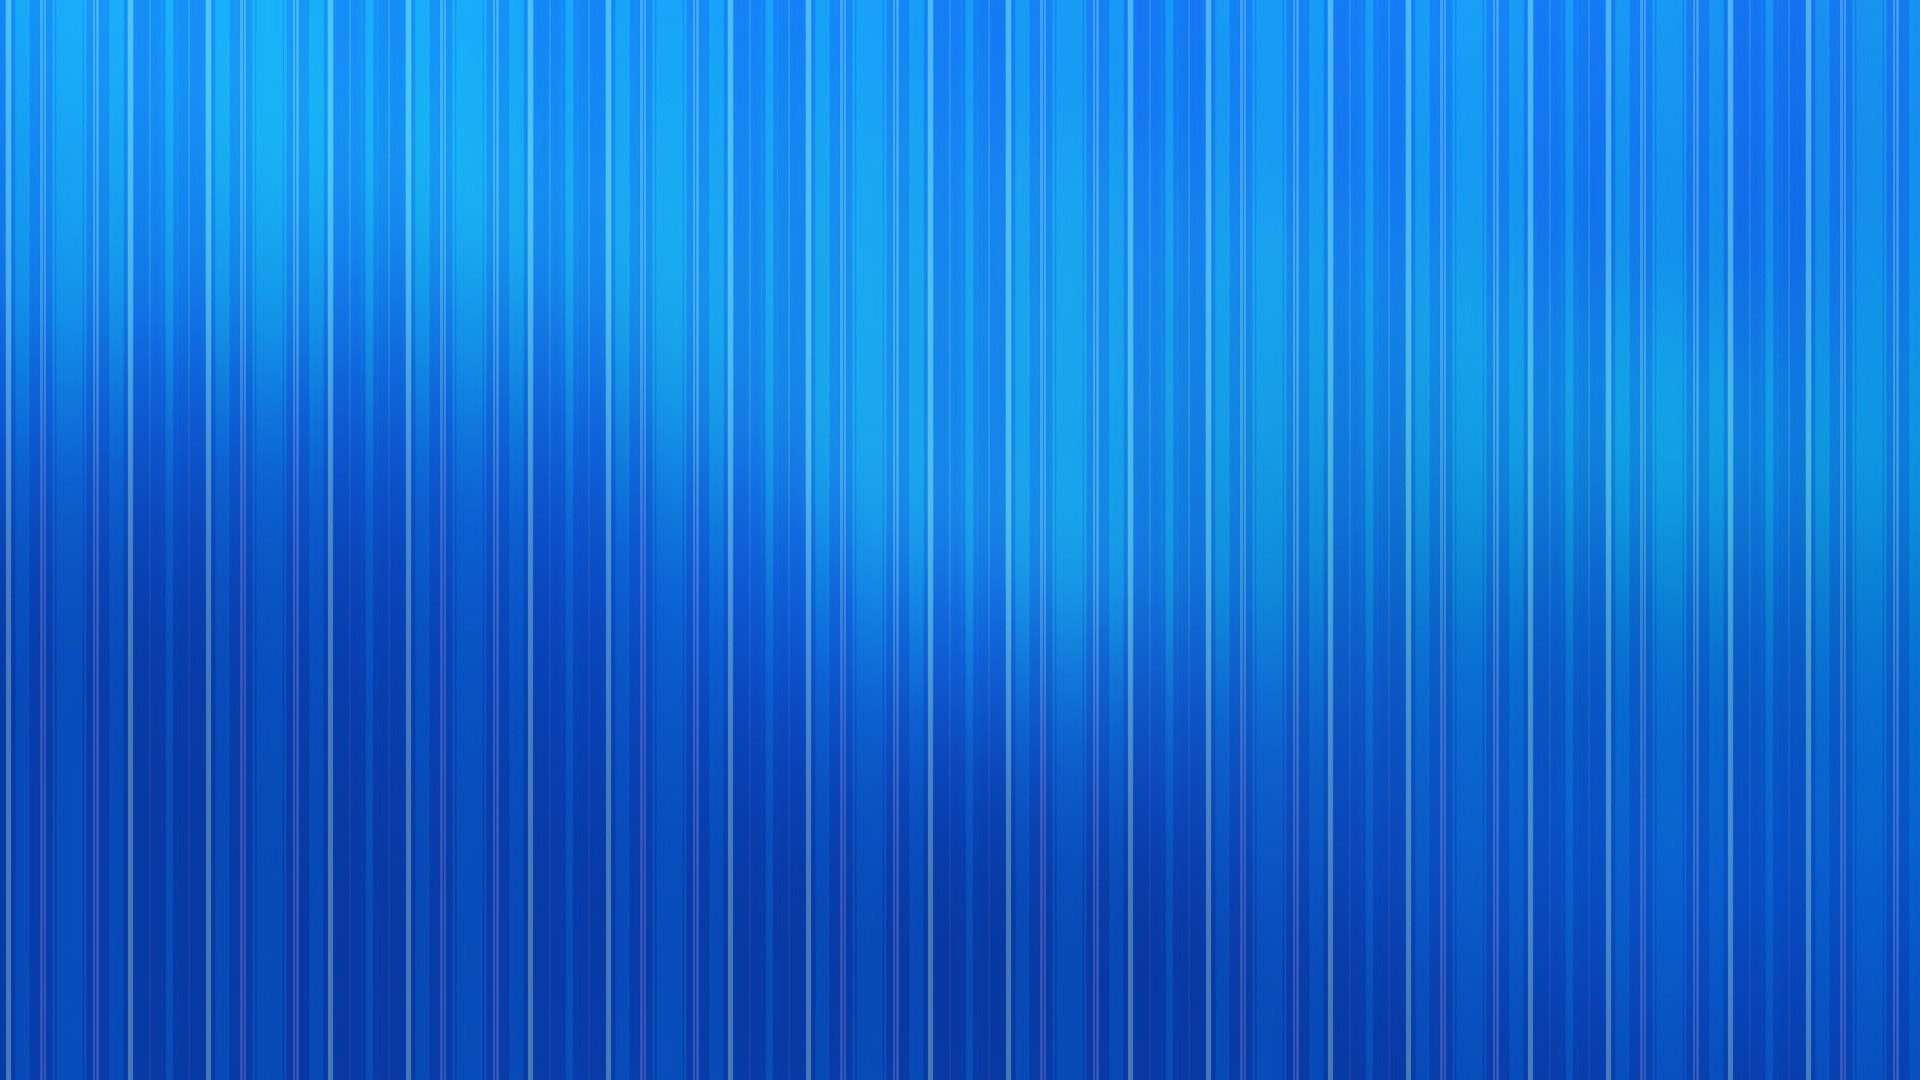 Free Blue Stripes Wallpaper 34549